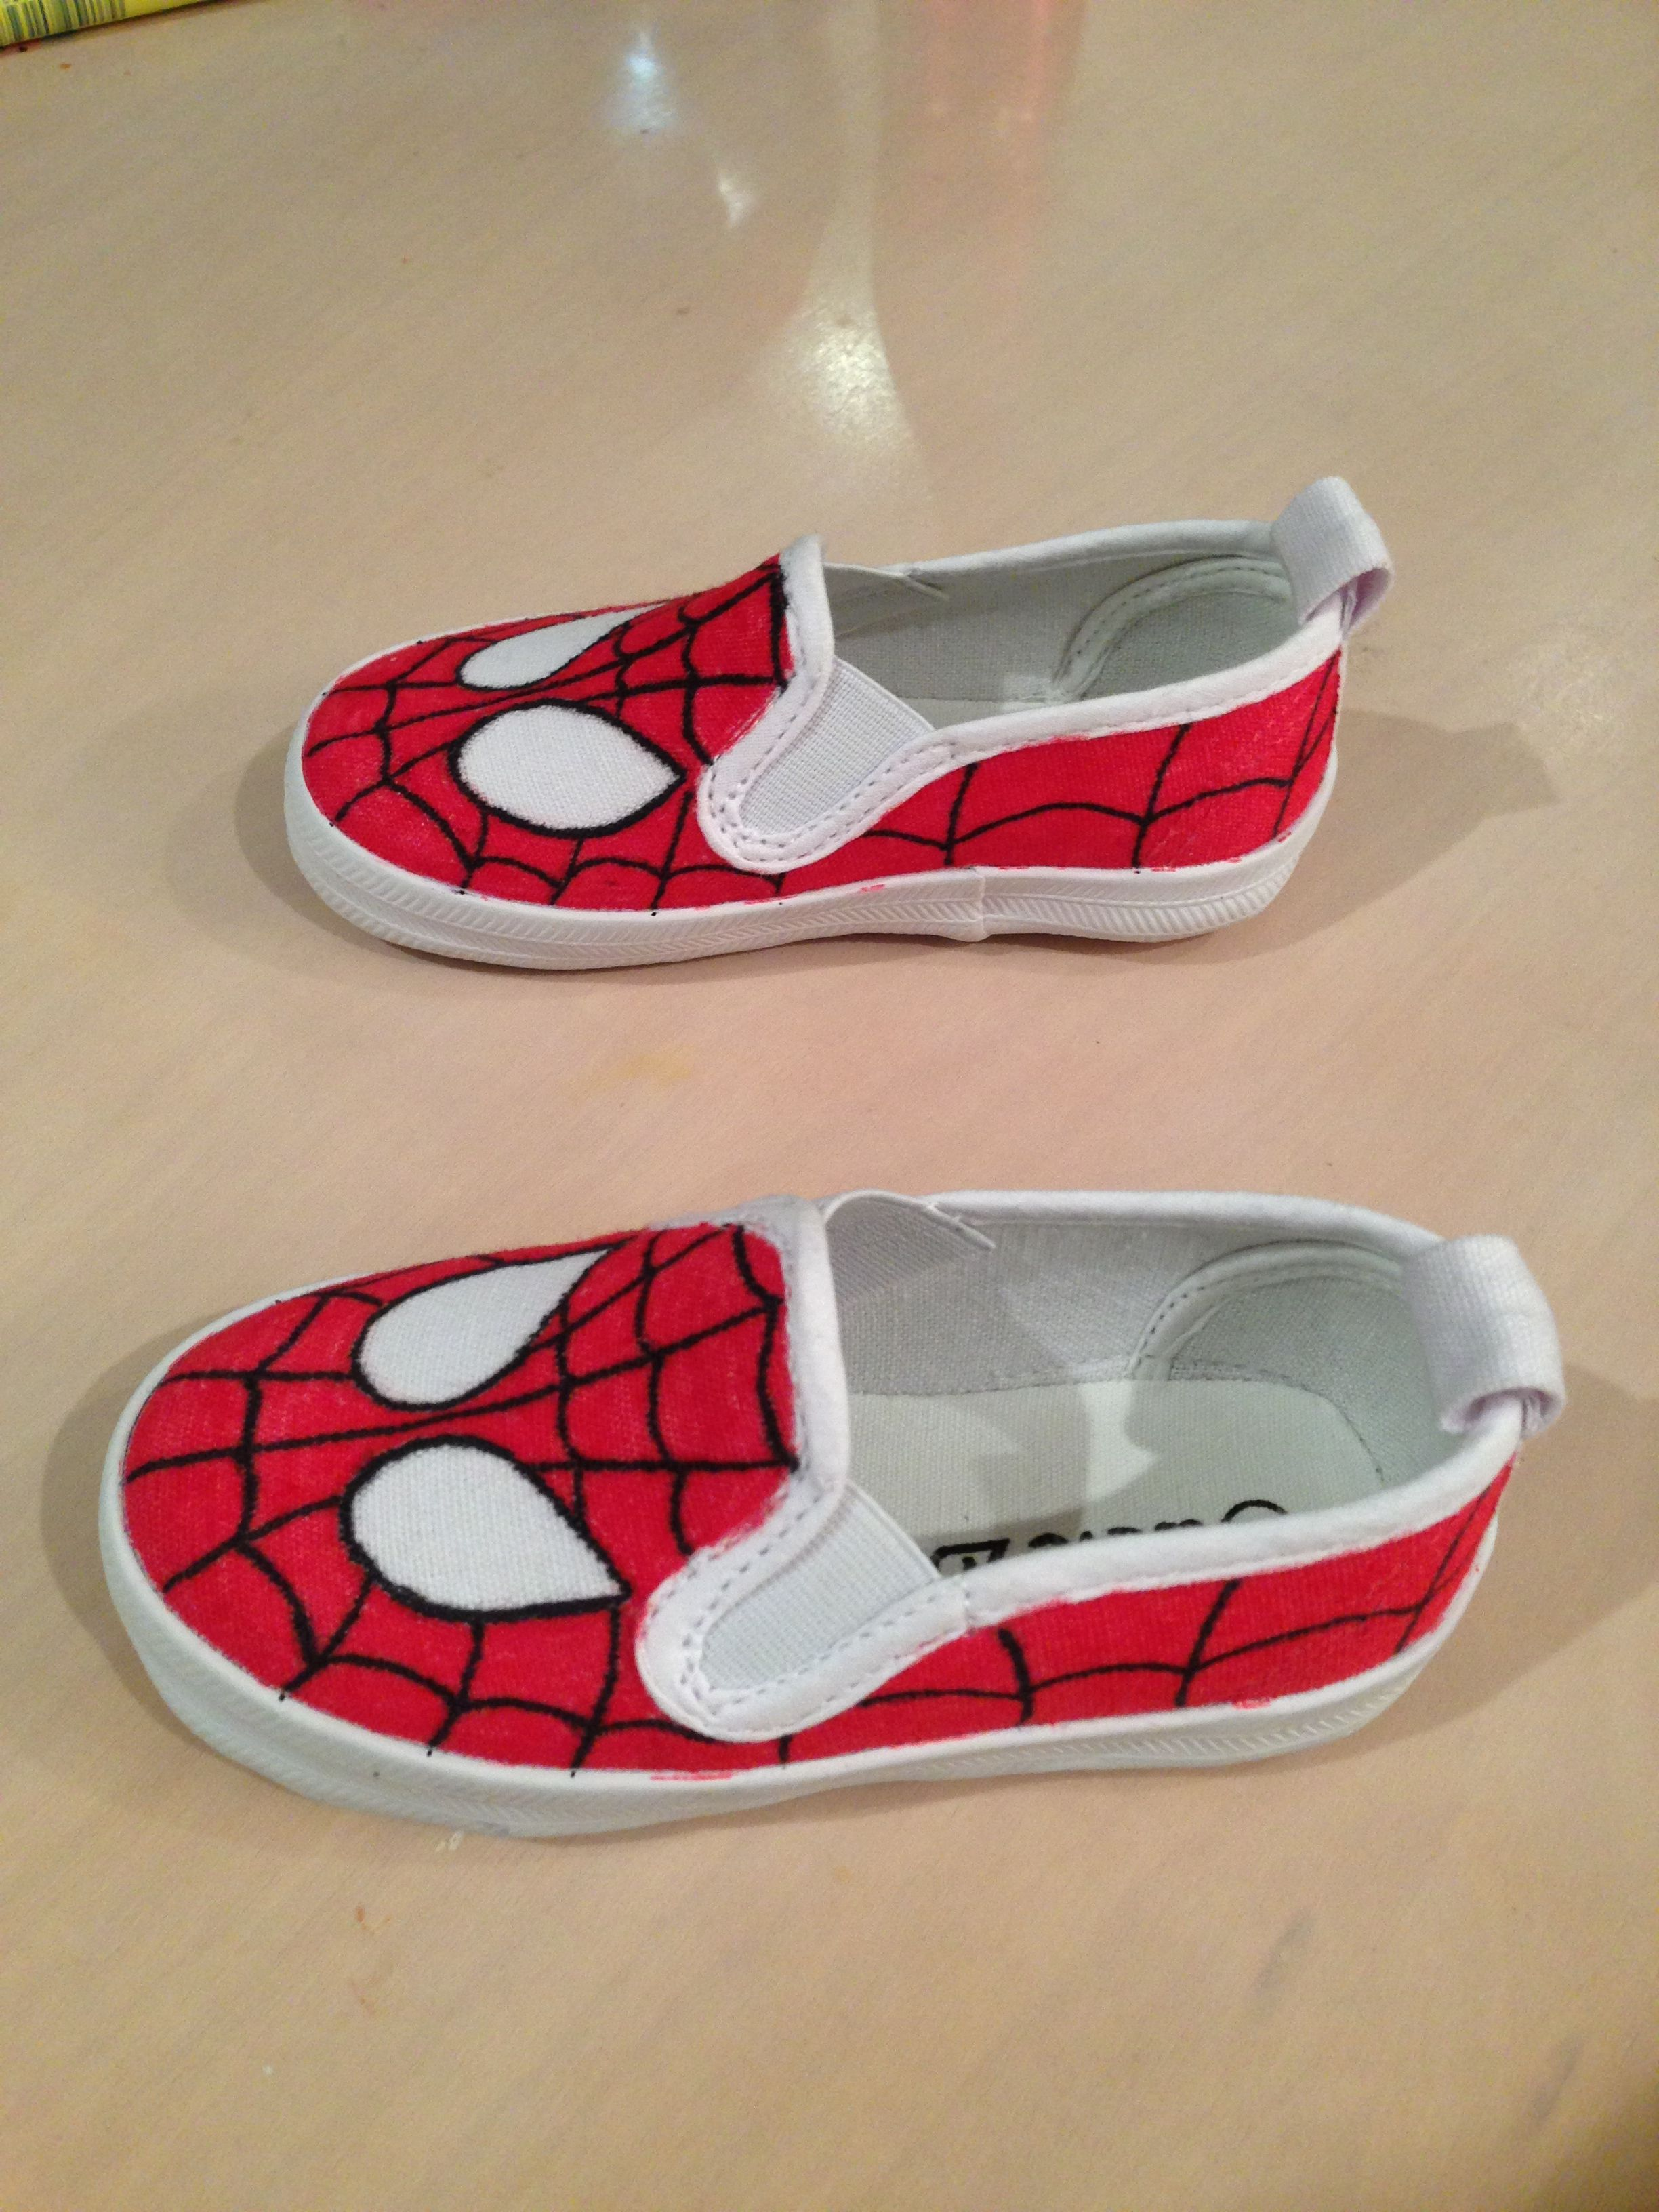 48707f70f4edc DIY Spiderman shoes - Visit to grab an amazing super hero shirt now ...